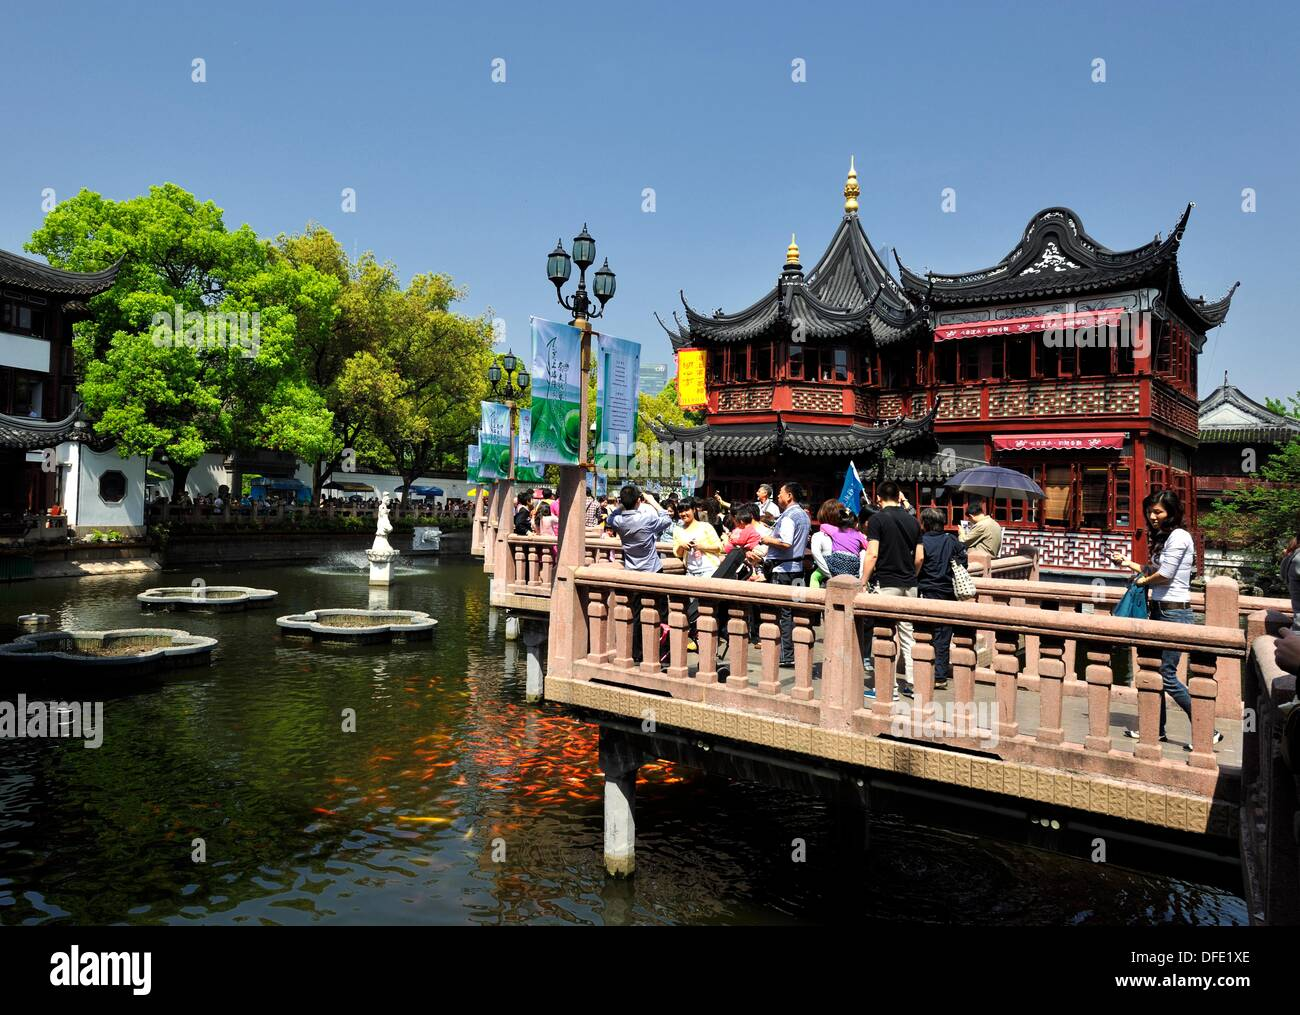 Mid Lake Pavilion Teahouse In The Style Of Ming Dynasty, Shanghai, China